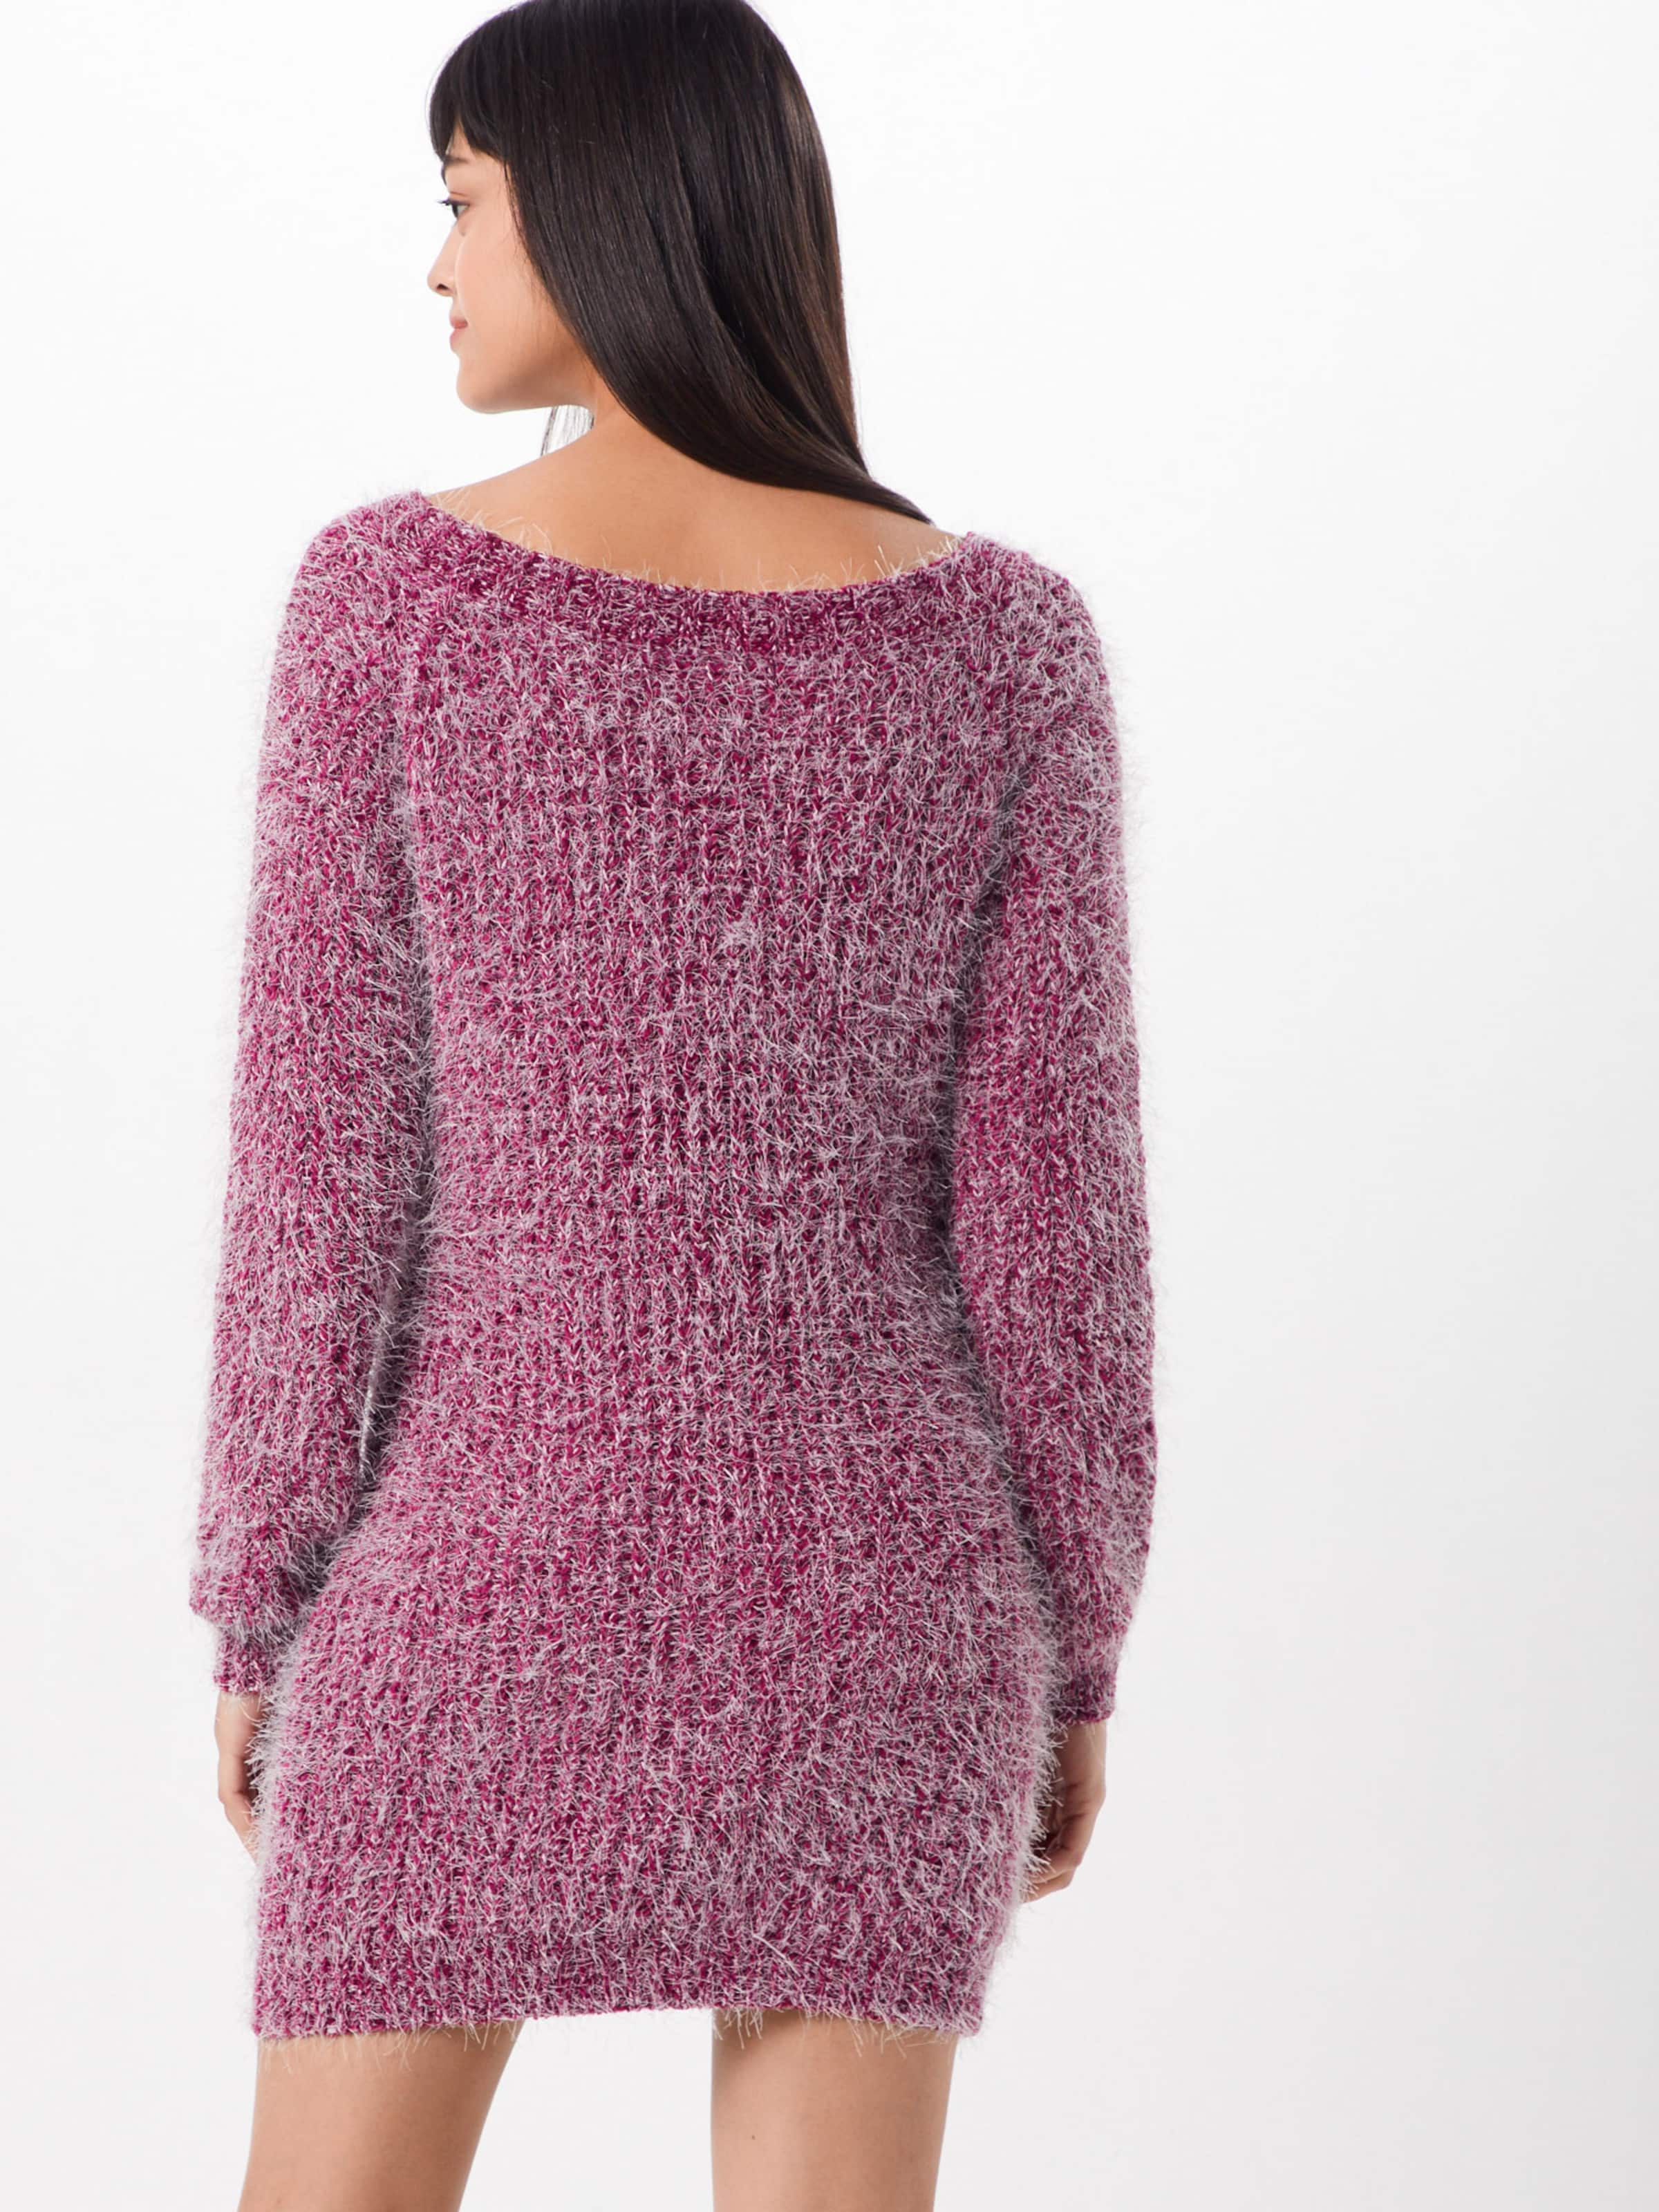 Missguided Missguided 'chenille' In MagentaWeiß Kleid 'chenille' Kleid Missguided In MagentaWeiß 4j3R5AcLq